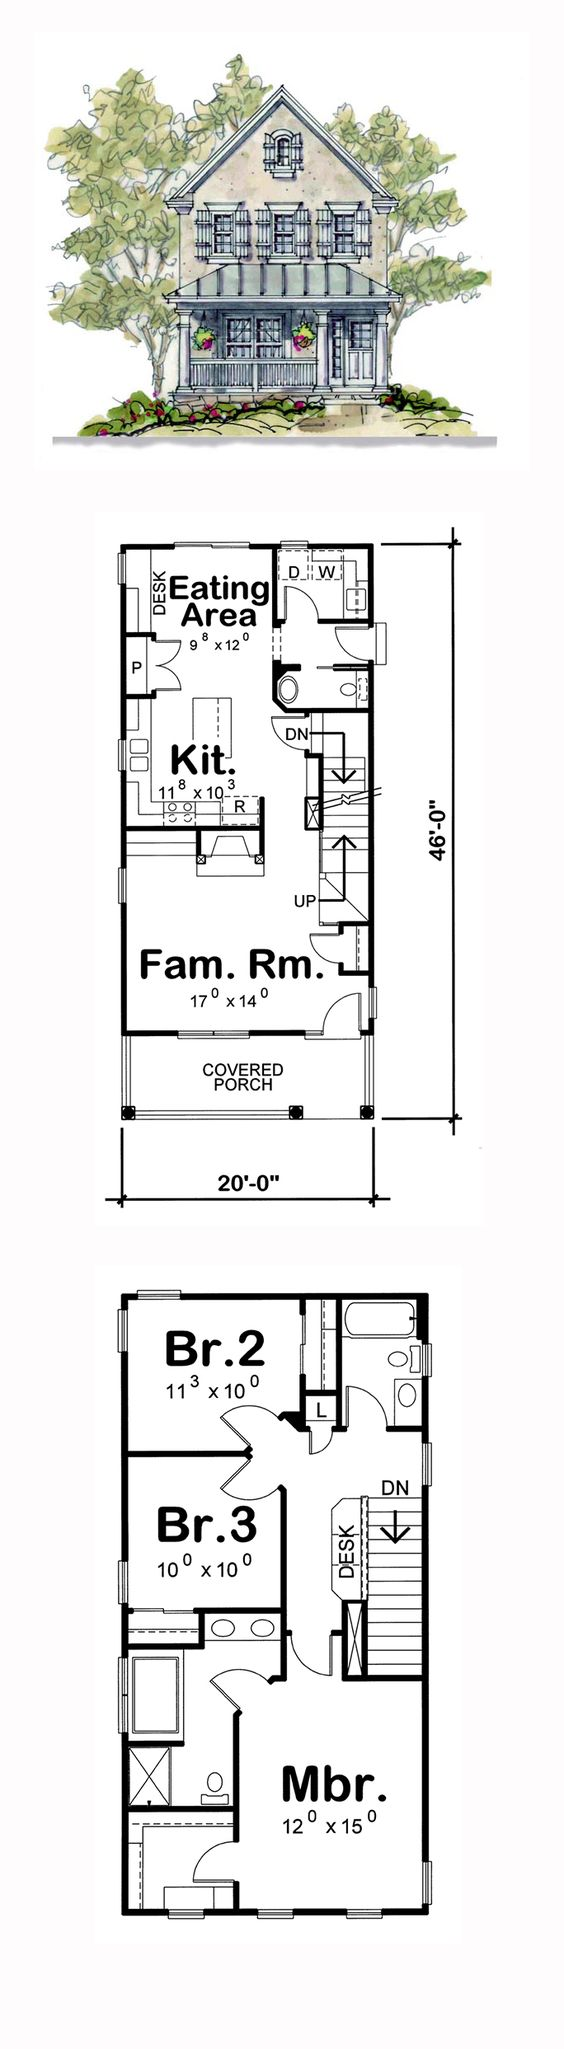 Narrow lot house plans house plans and bedrooms on pinterest House floor plans narrow lot